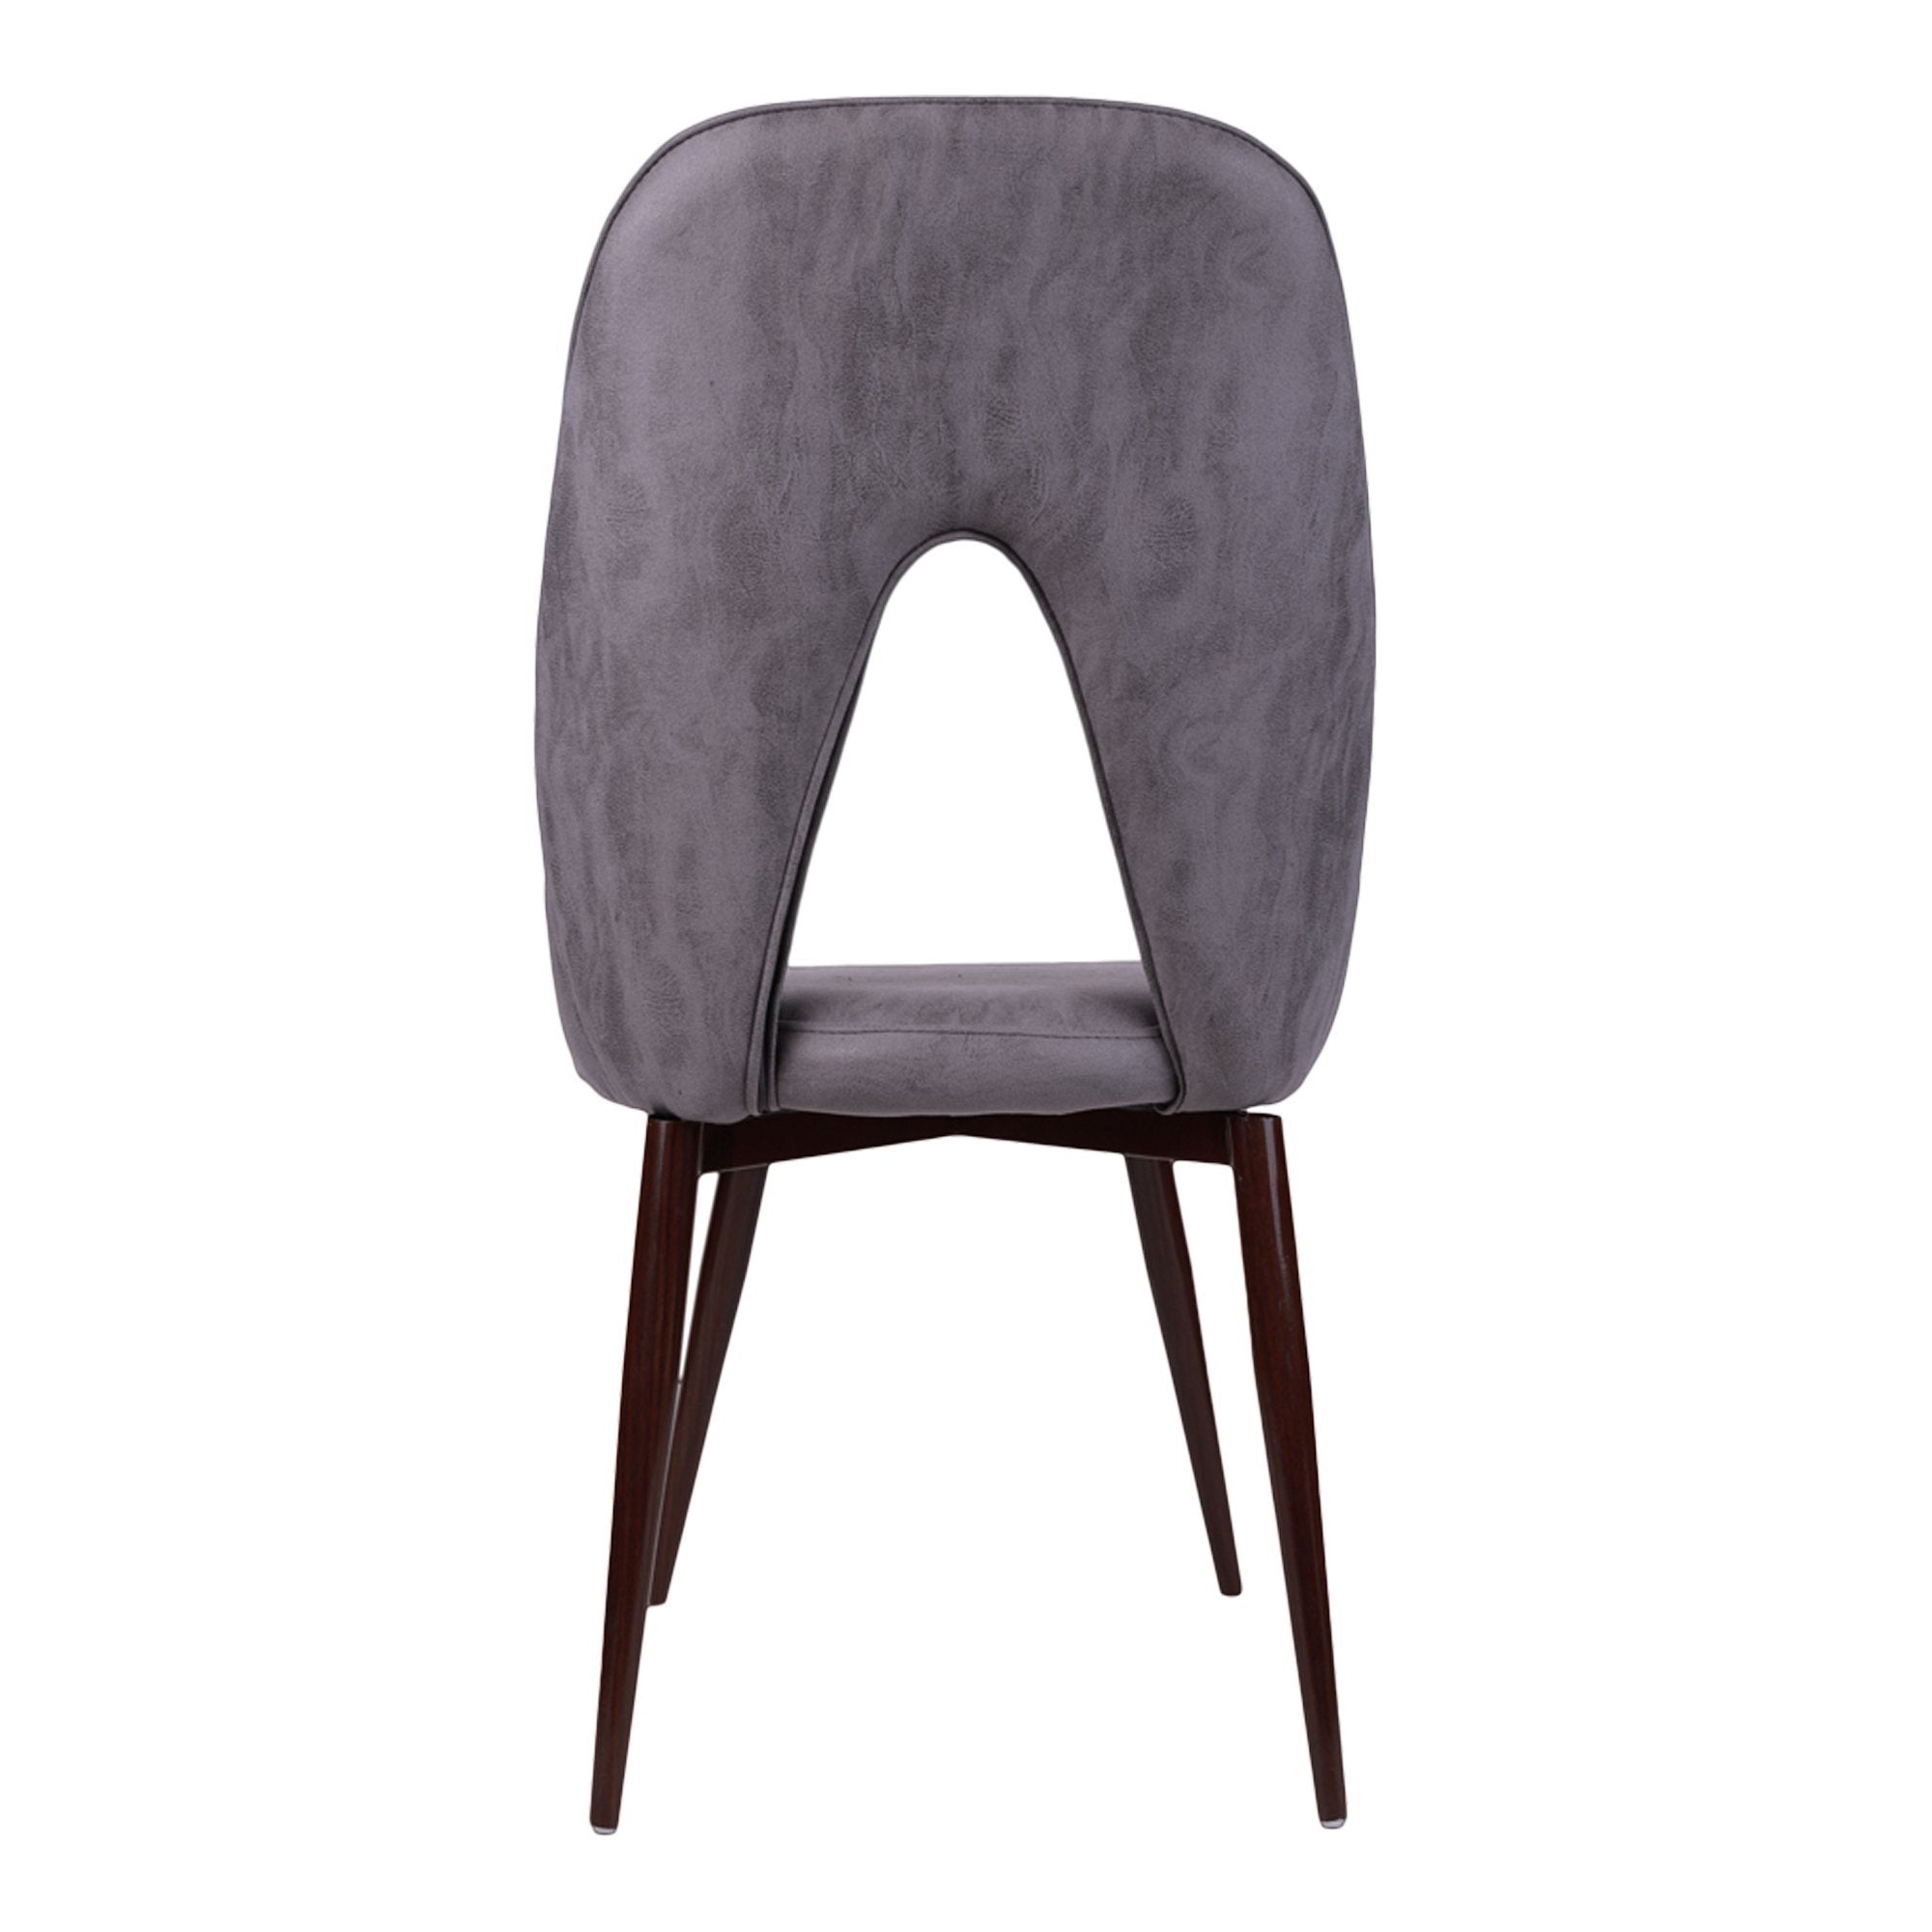 Hale Stacking Chair in Grey Color- Set of 2 - Teak Tale